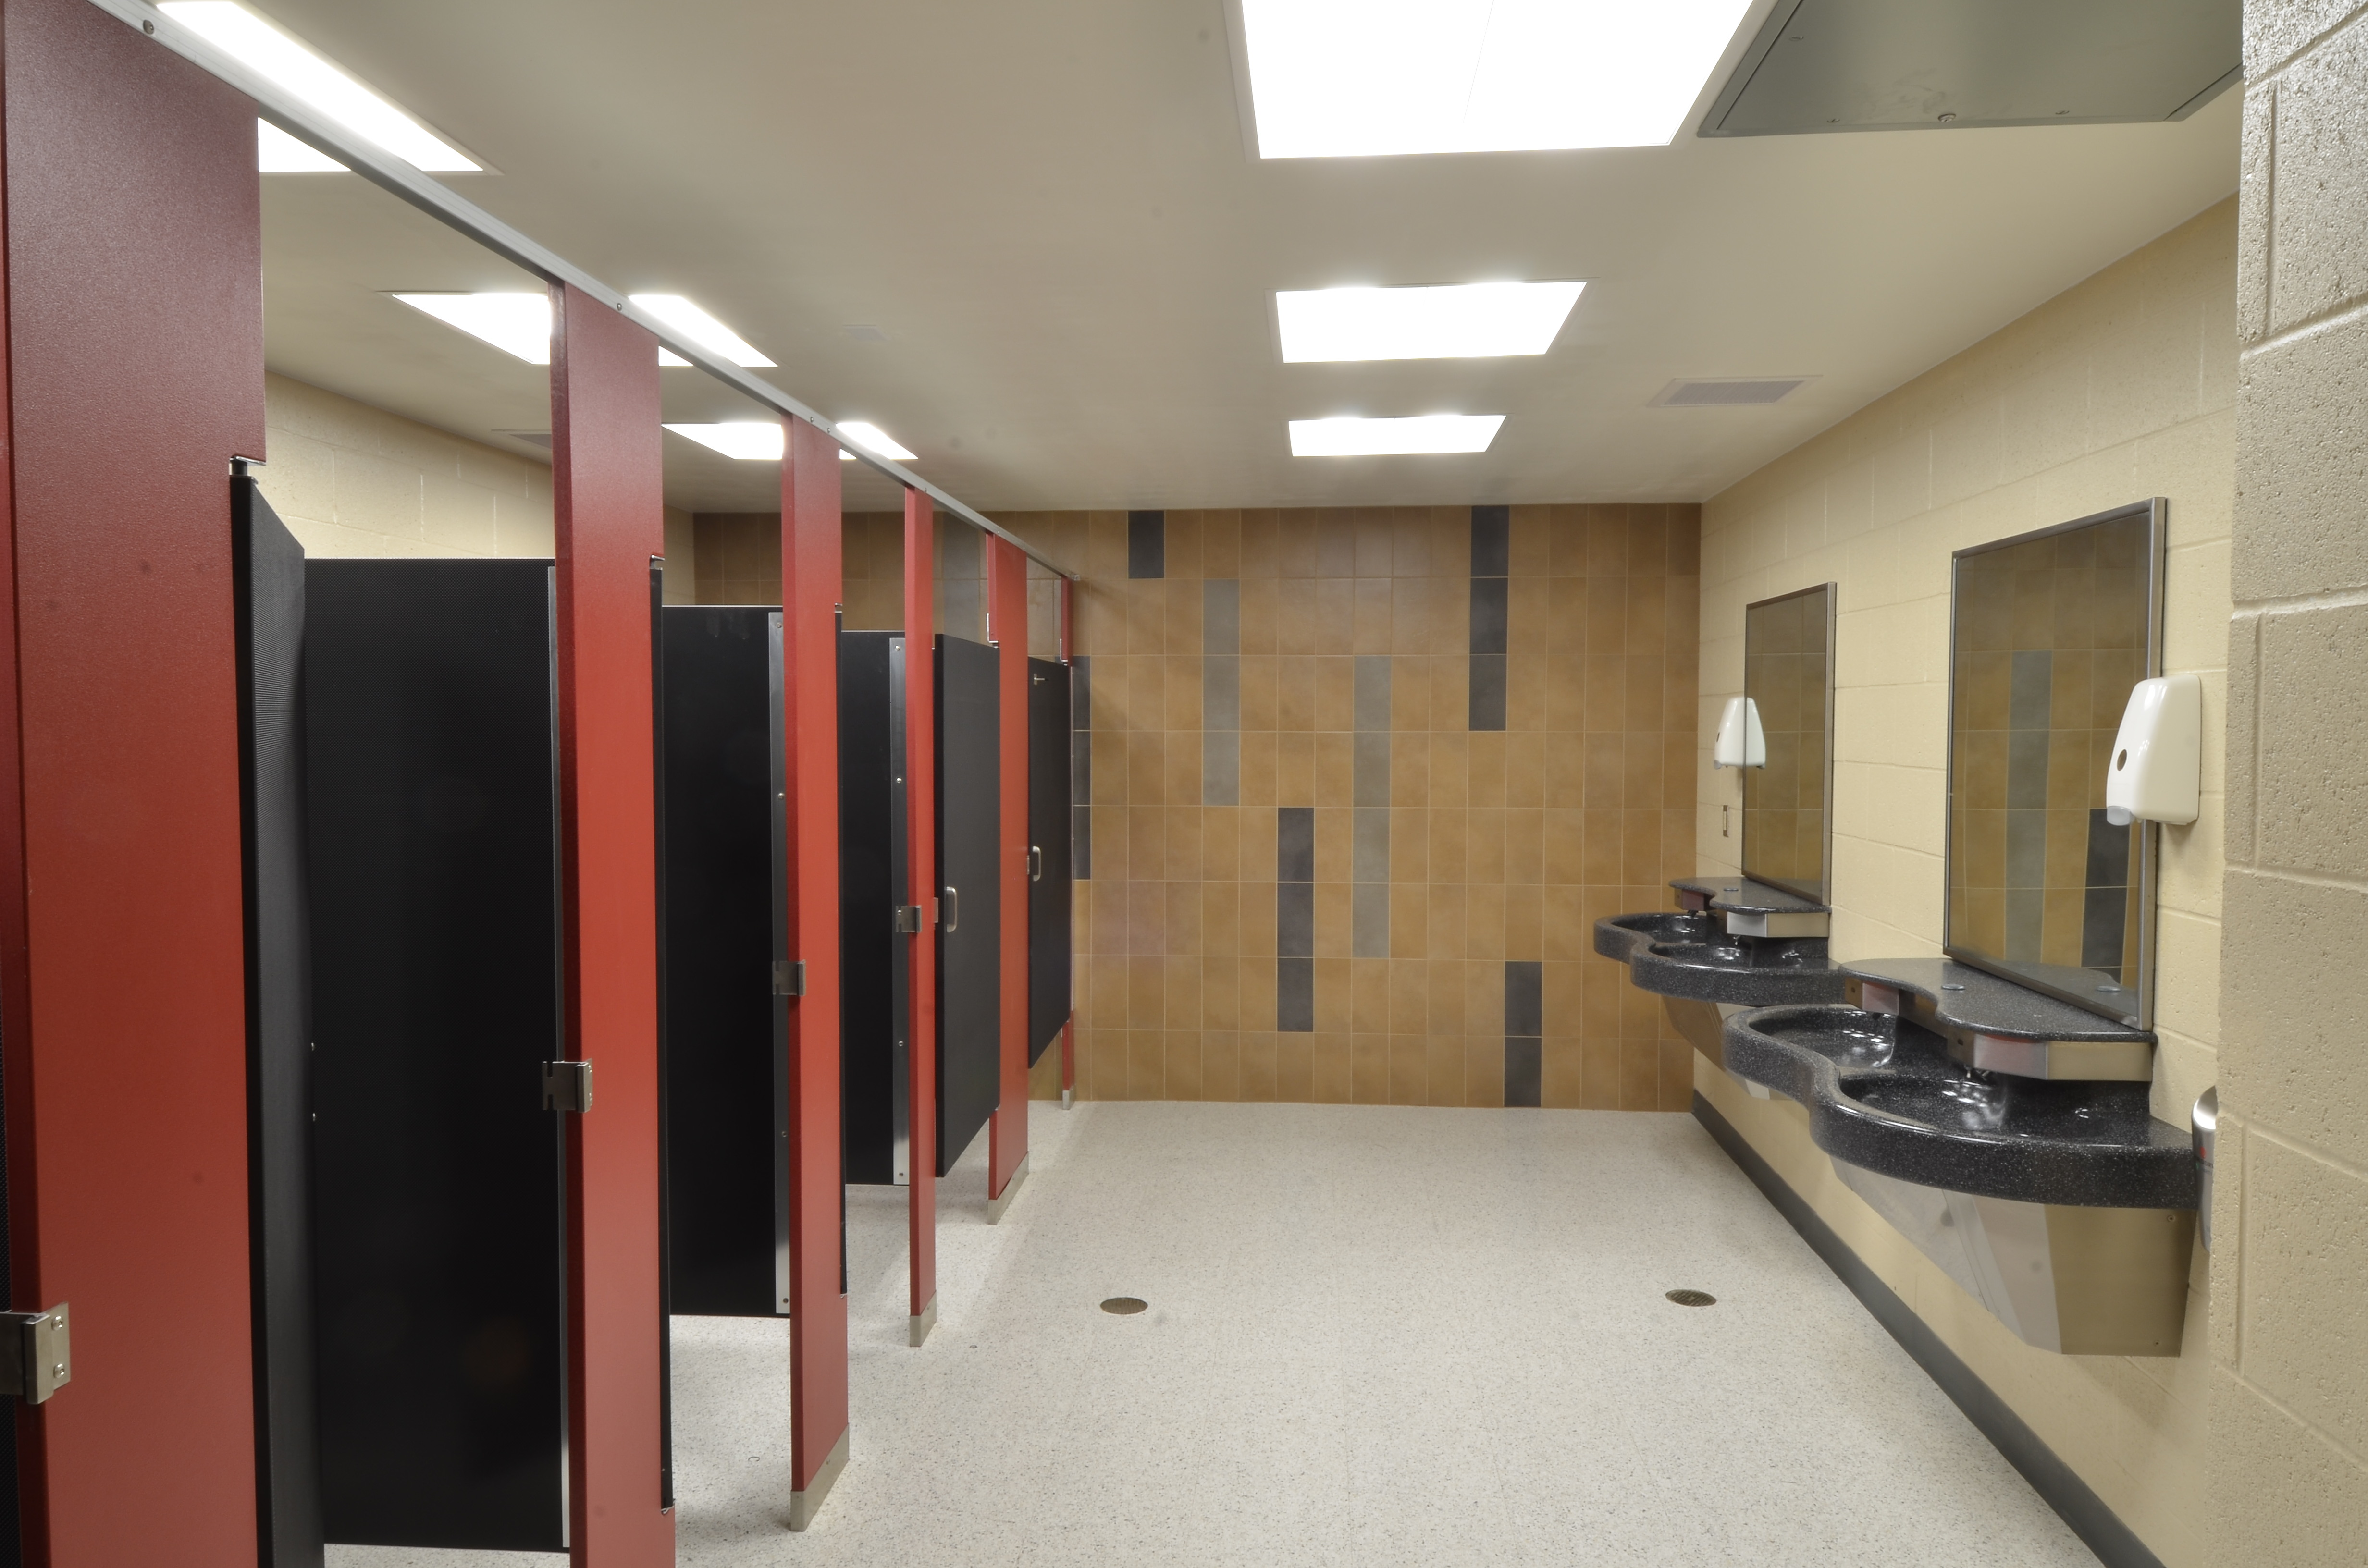 Peoria high school selects scranton products restroom for Bath remodel peoria il